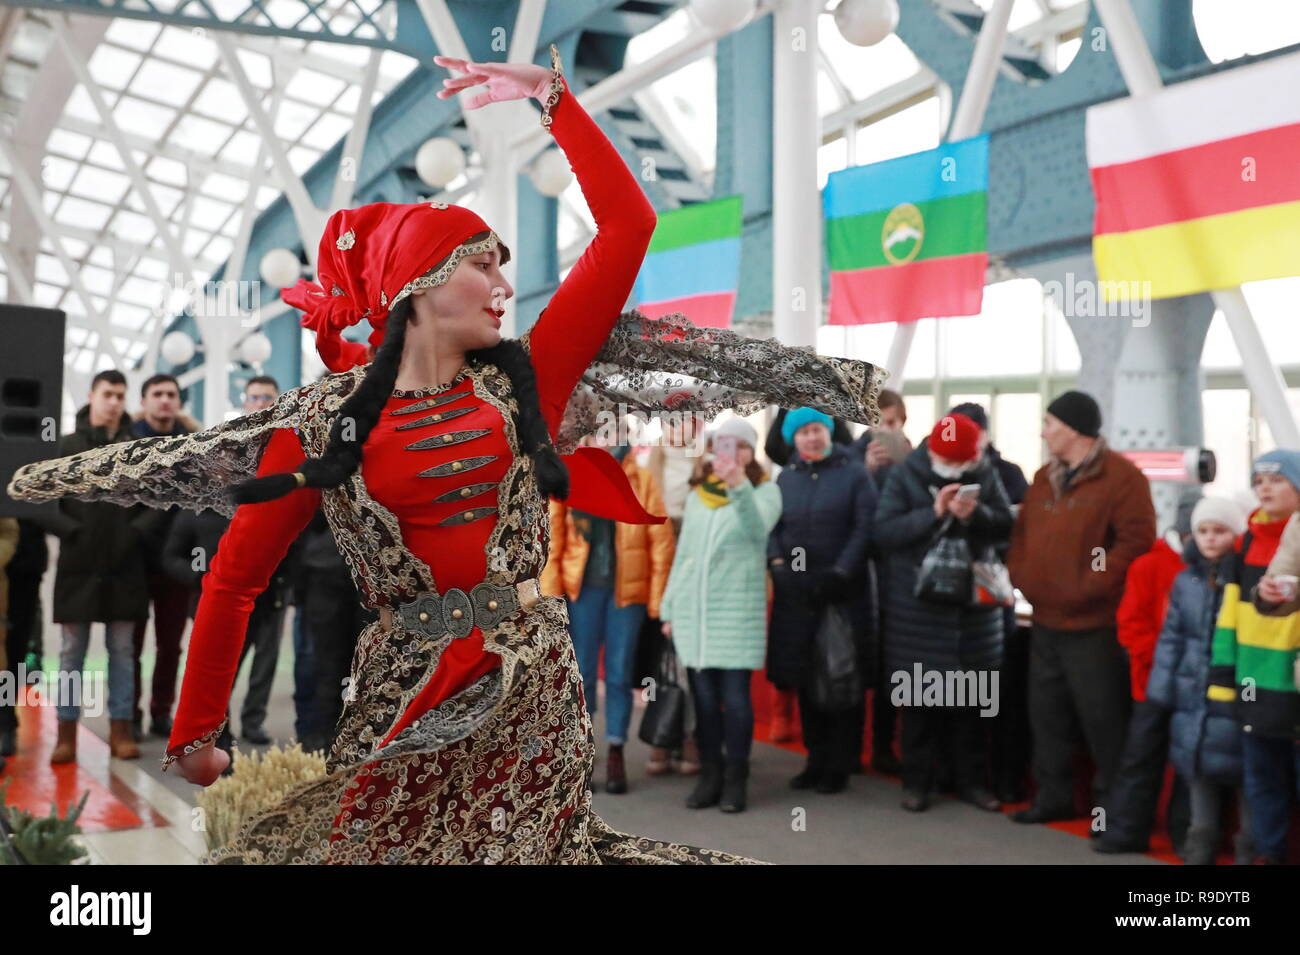 Moscow, Russia. 23rd Dec, 2018.  A woman in a tradition dress dancing during a ceremony to measure halva prepared by cooks from the 7 North Caucasus regions on the Bogdan Khmelnitsky Bridge. The 65.5-metre long confection weighing 570 kg has entered the Russian Book of Records as the largest.  Credit: ITAR-TASS News Agency/Alamy Live News - Stock Image